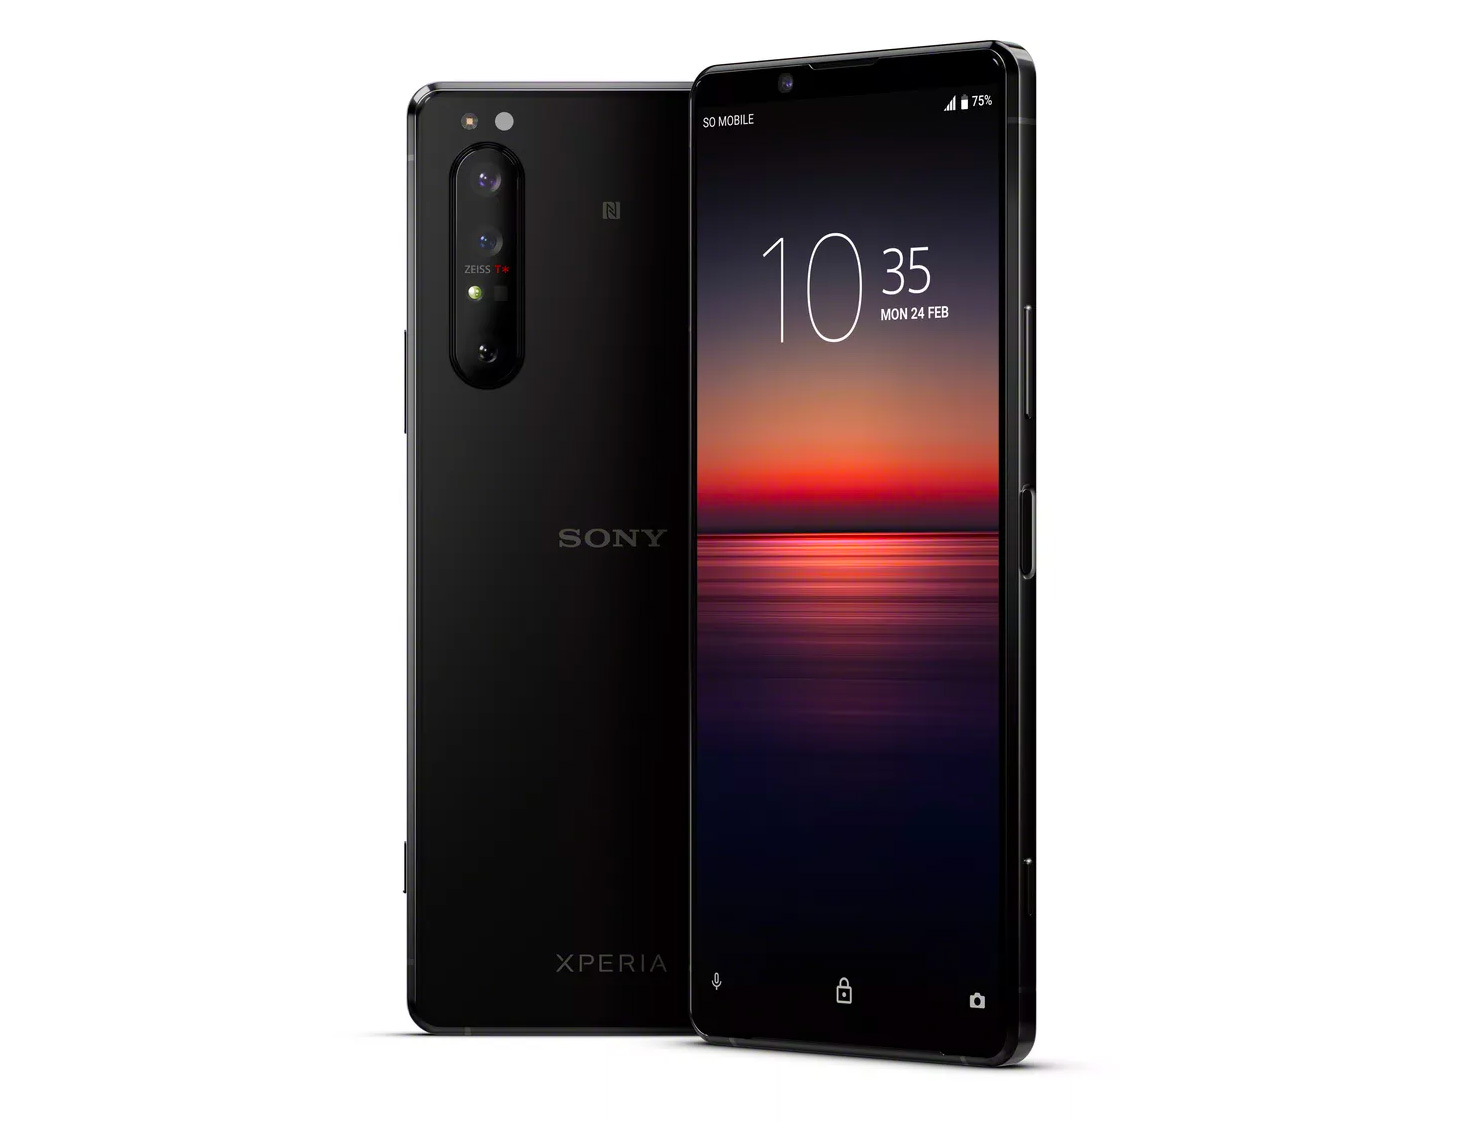 The Xperia 1 II is Sony's New Flagship Phone at werd.com